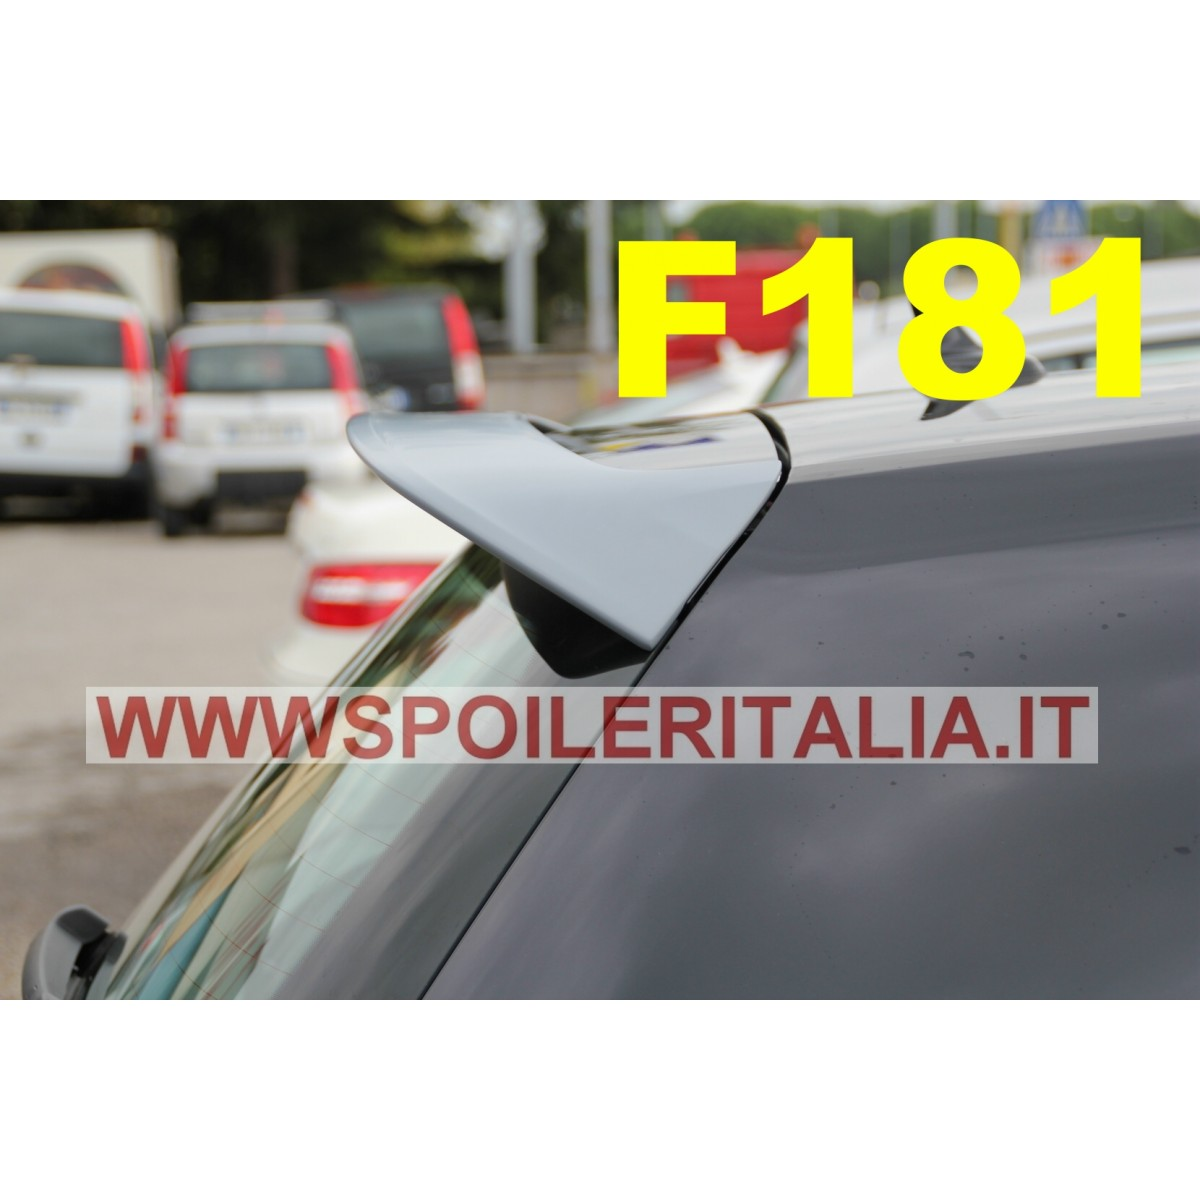 spoiler alettone posteriore golf 7 f181p e con primer assetto sportivo golf 7 vii volkswagen. Black Bedroom Furniture Sets. Home Design Ideas